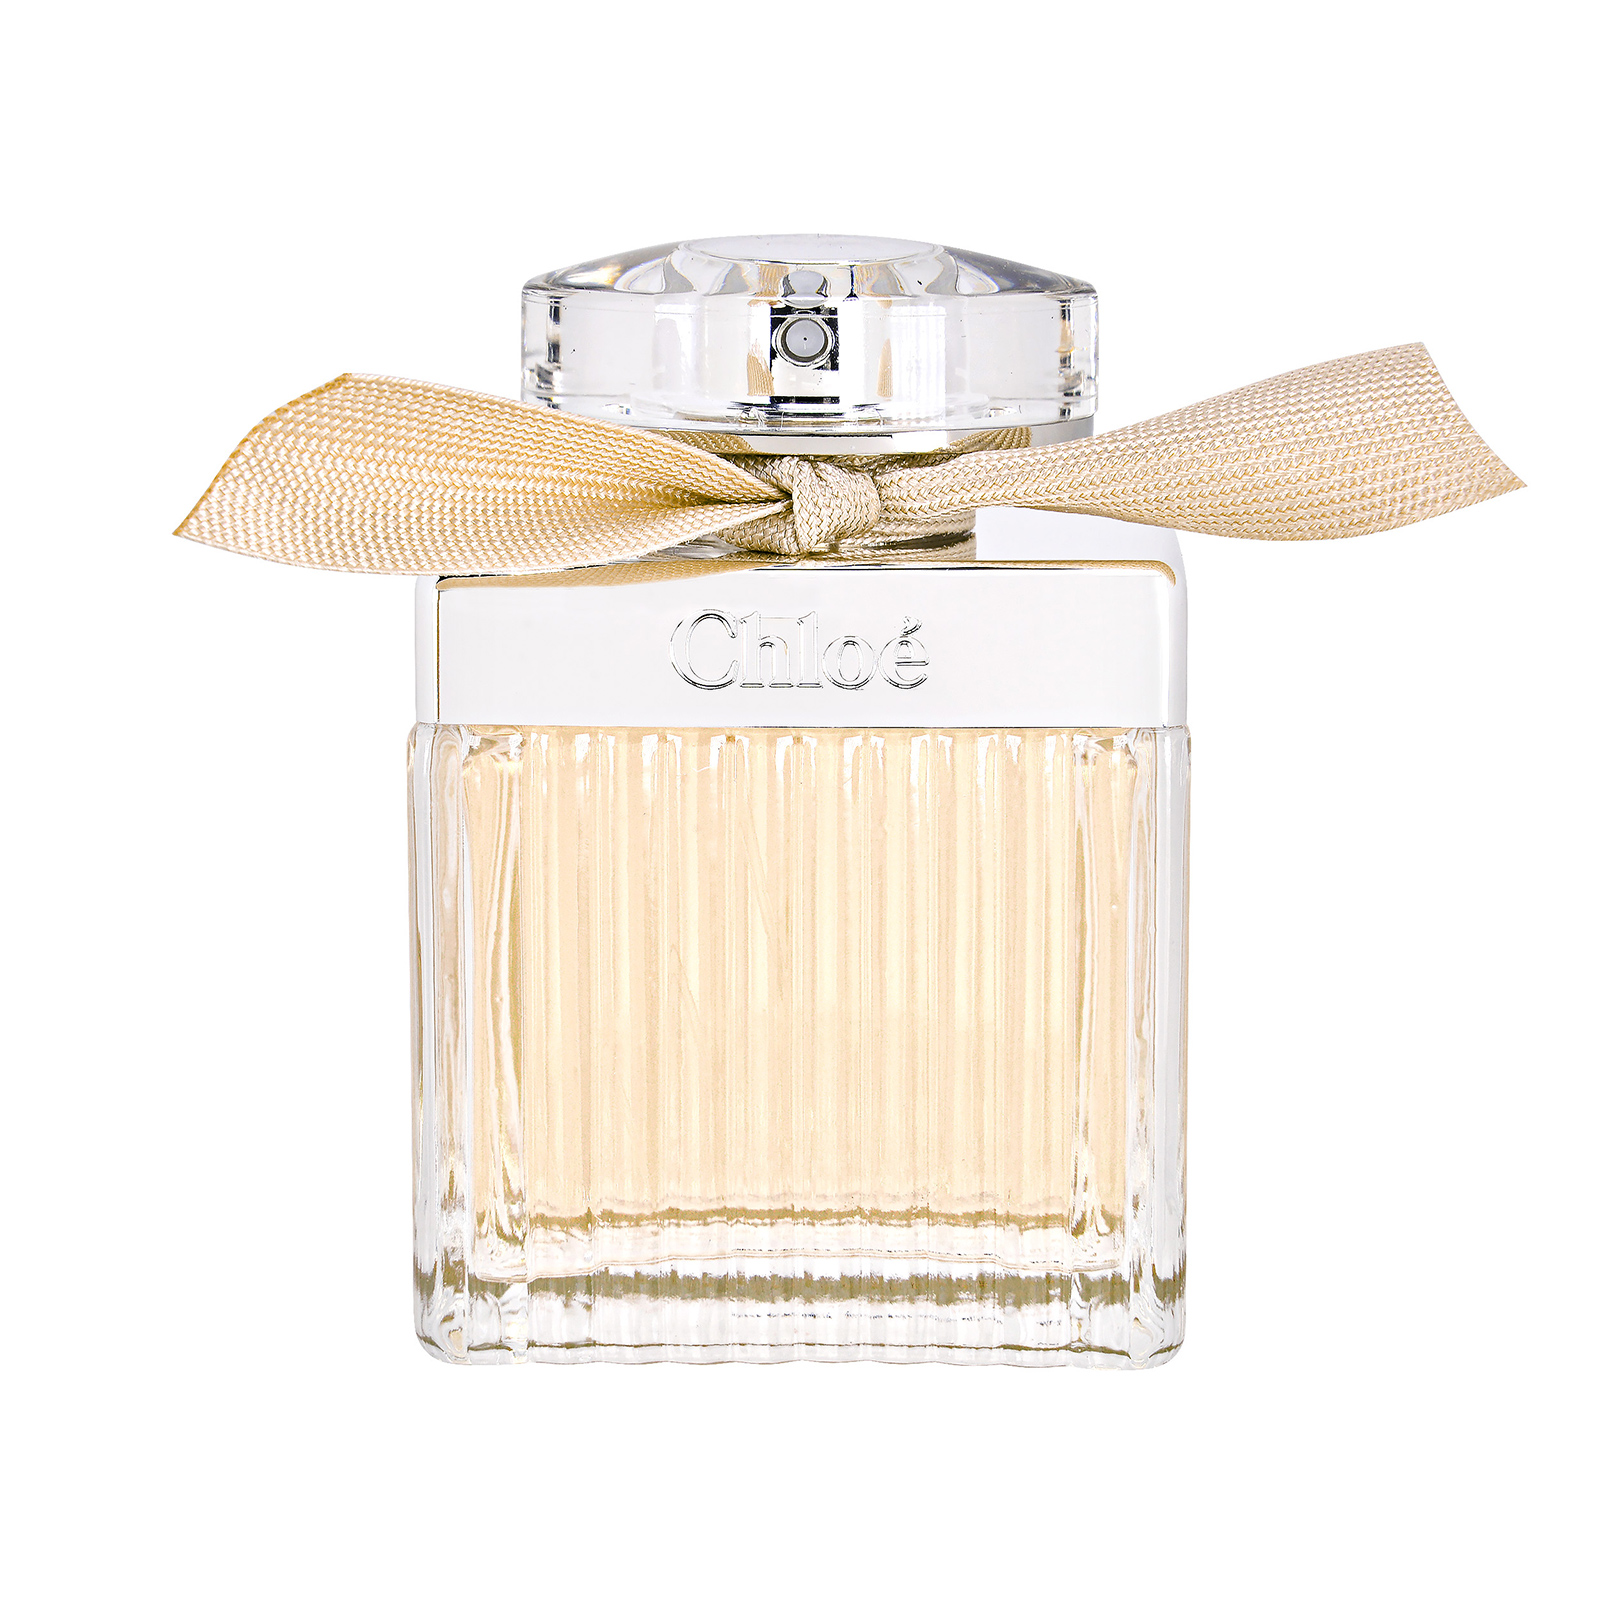 Chloe EDP 2.5oz, 75ml women